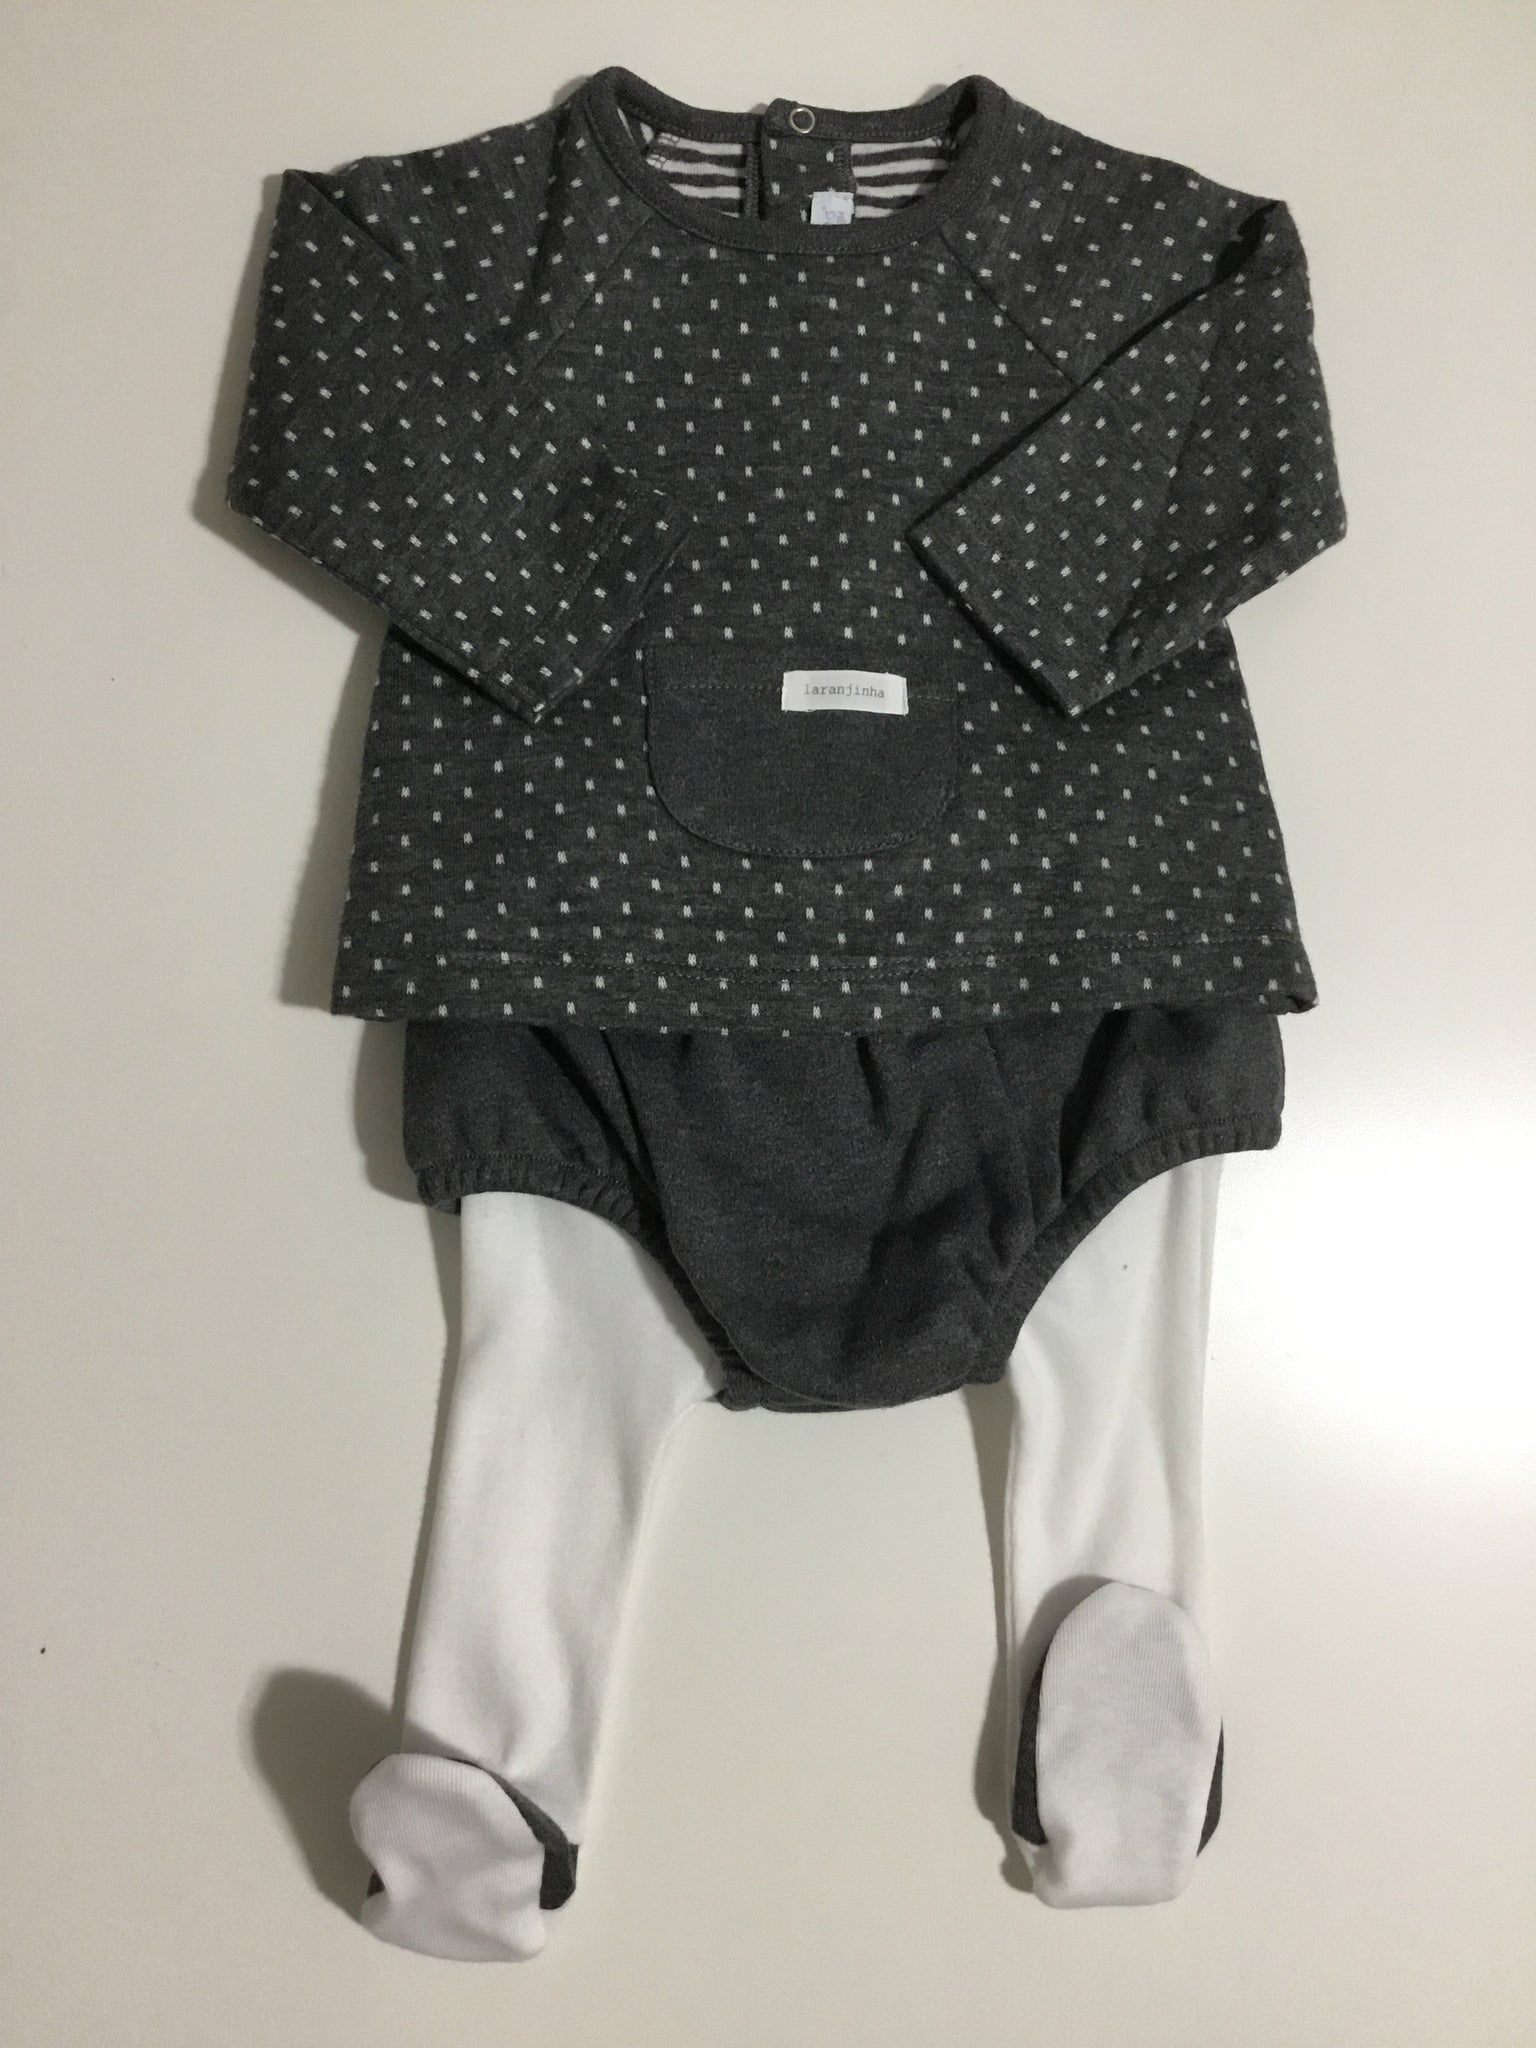 Laranjinha 2 piece set